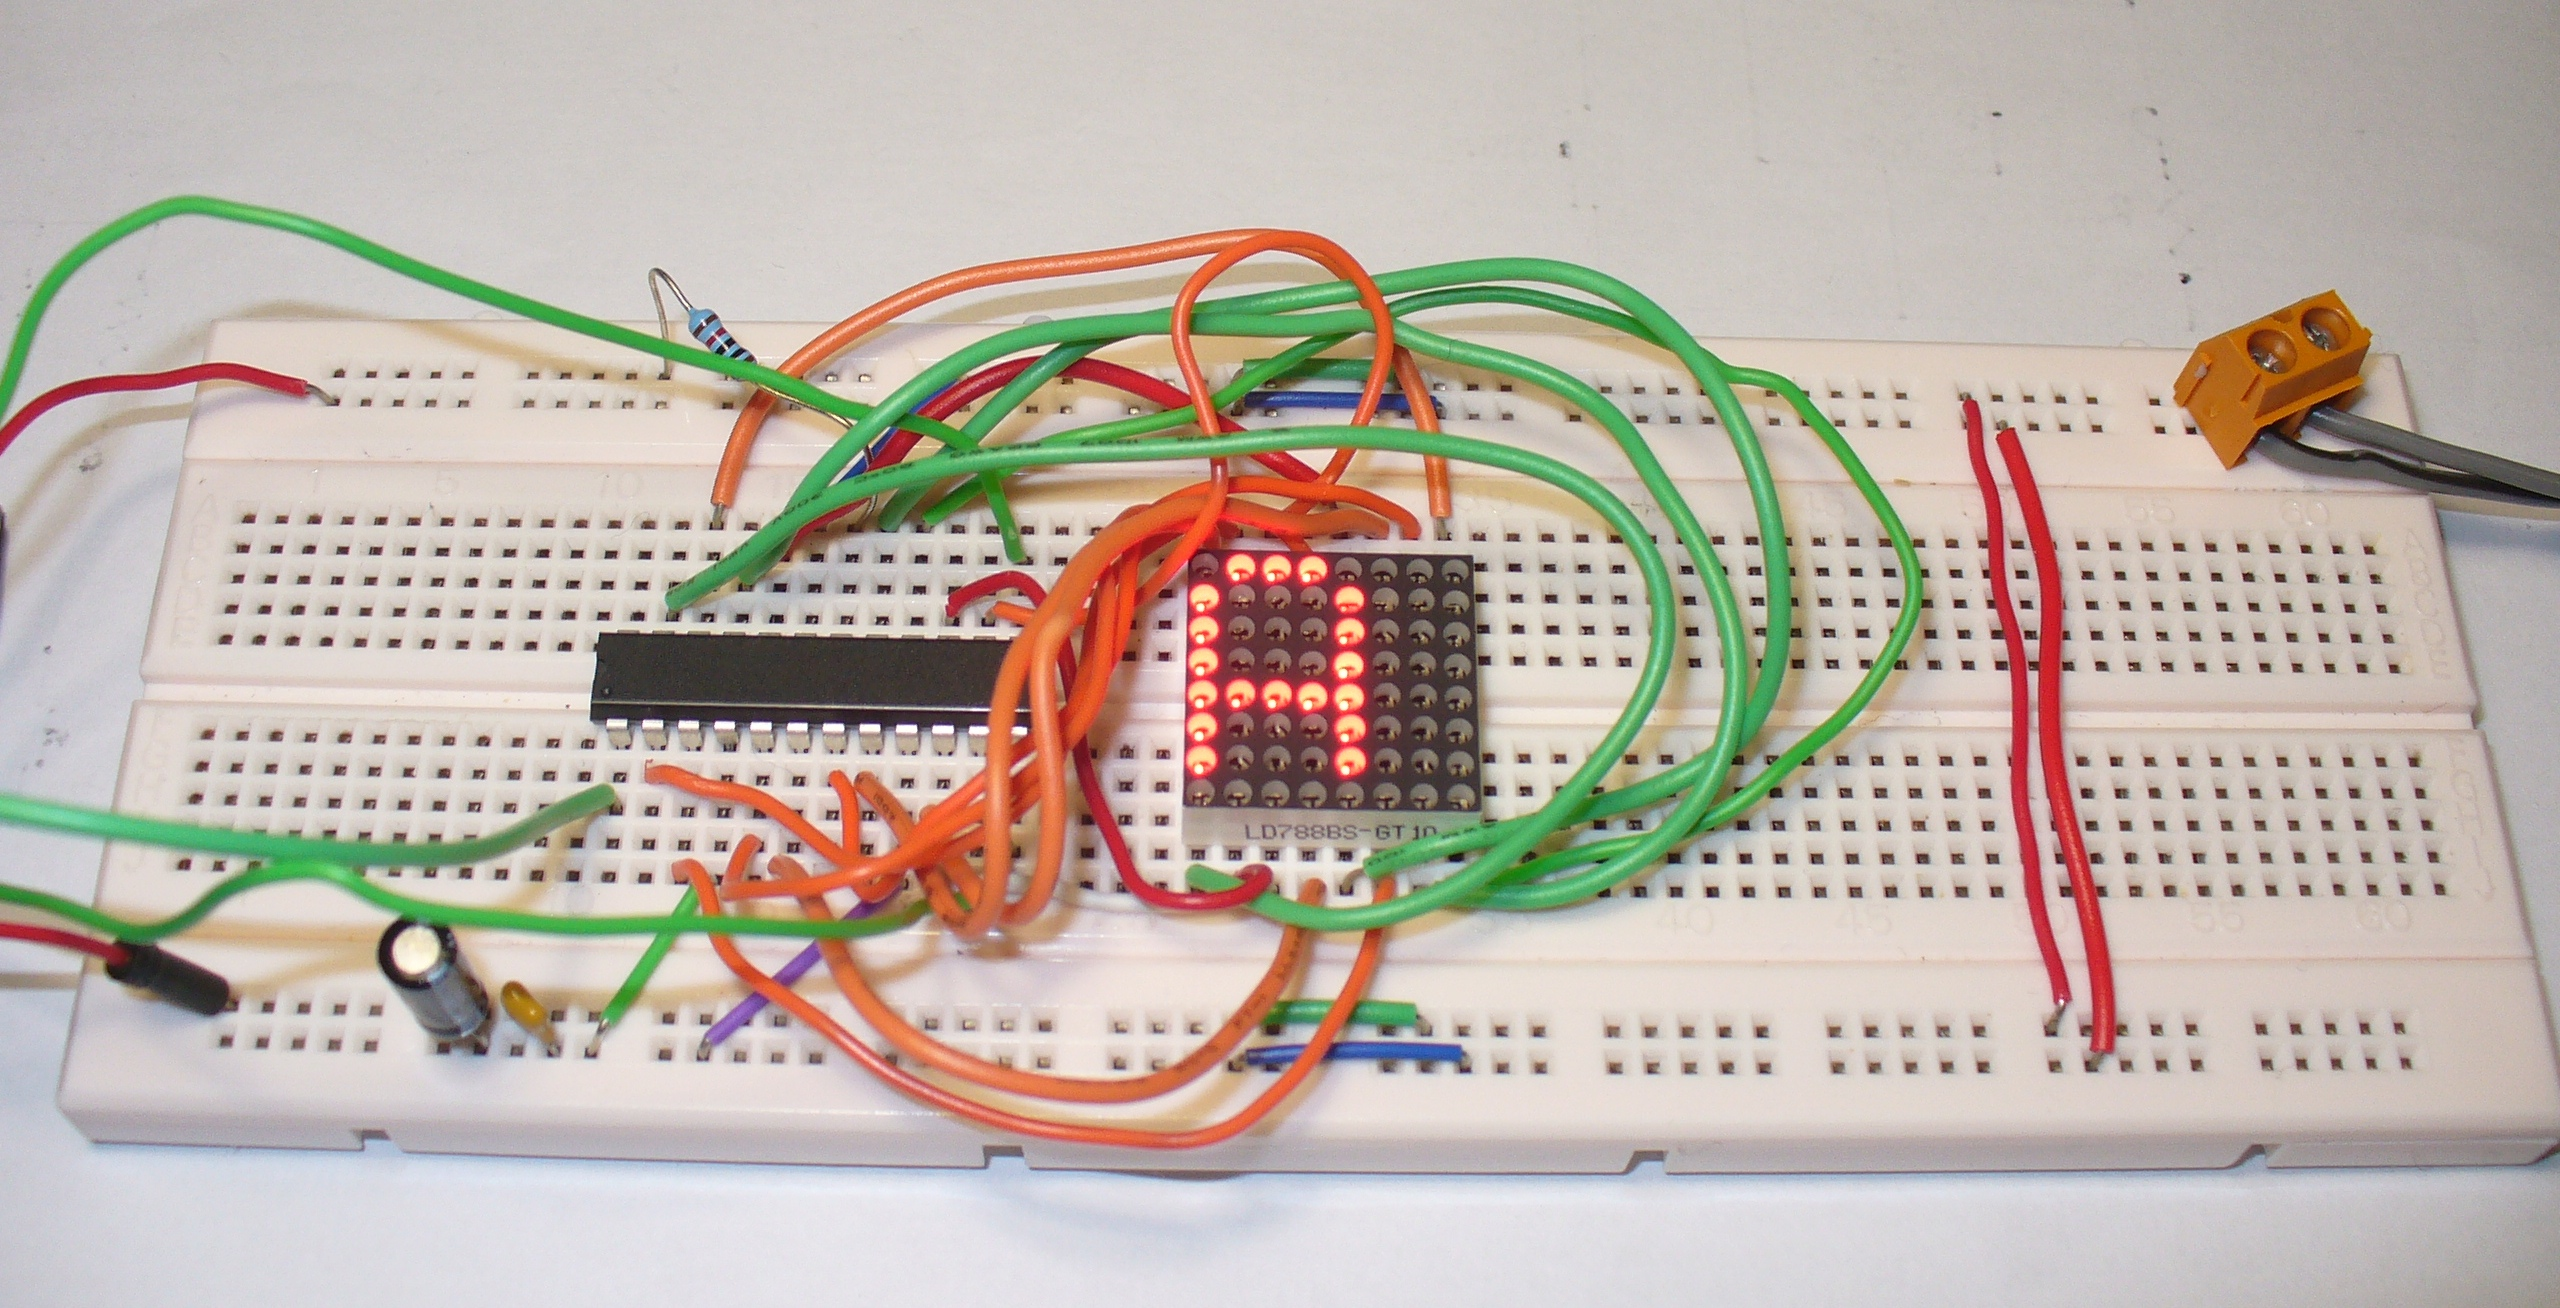 Example Planetarduino Circuit Led Bar Ic Lm3914 Picture Of Good Electronic In